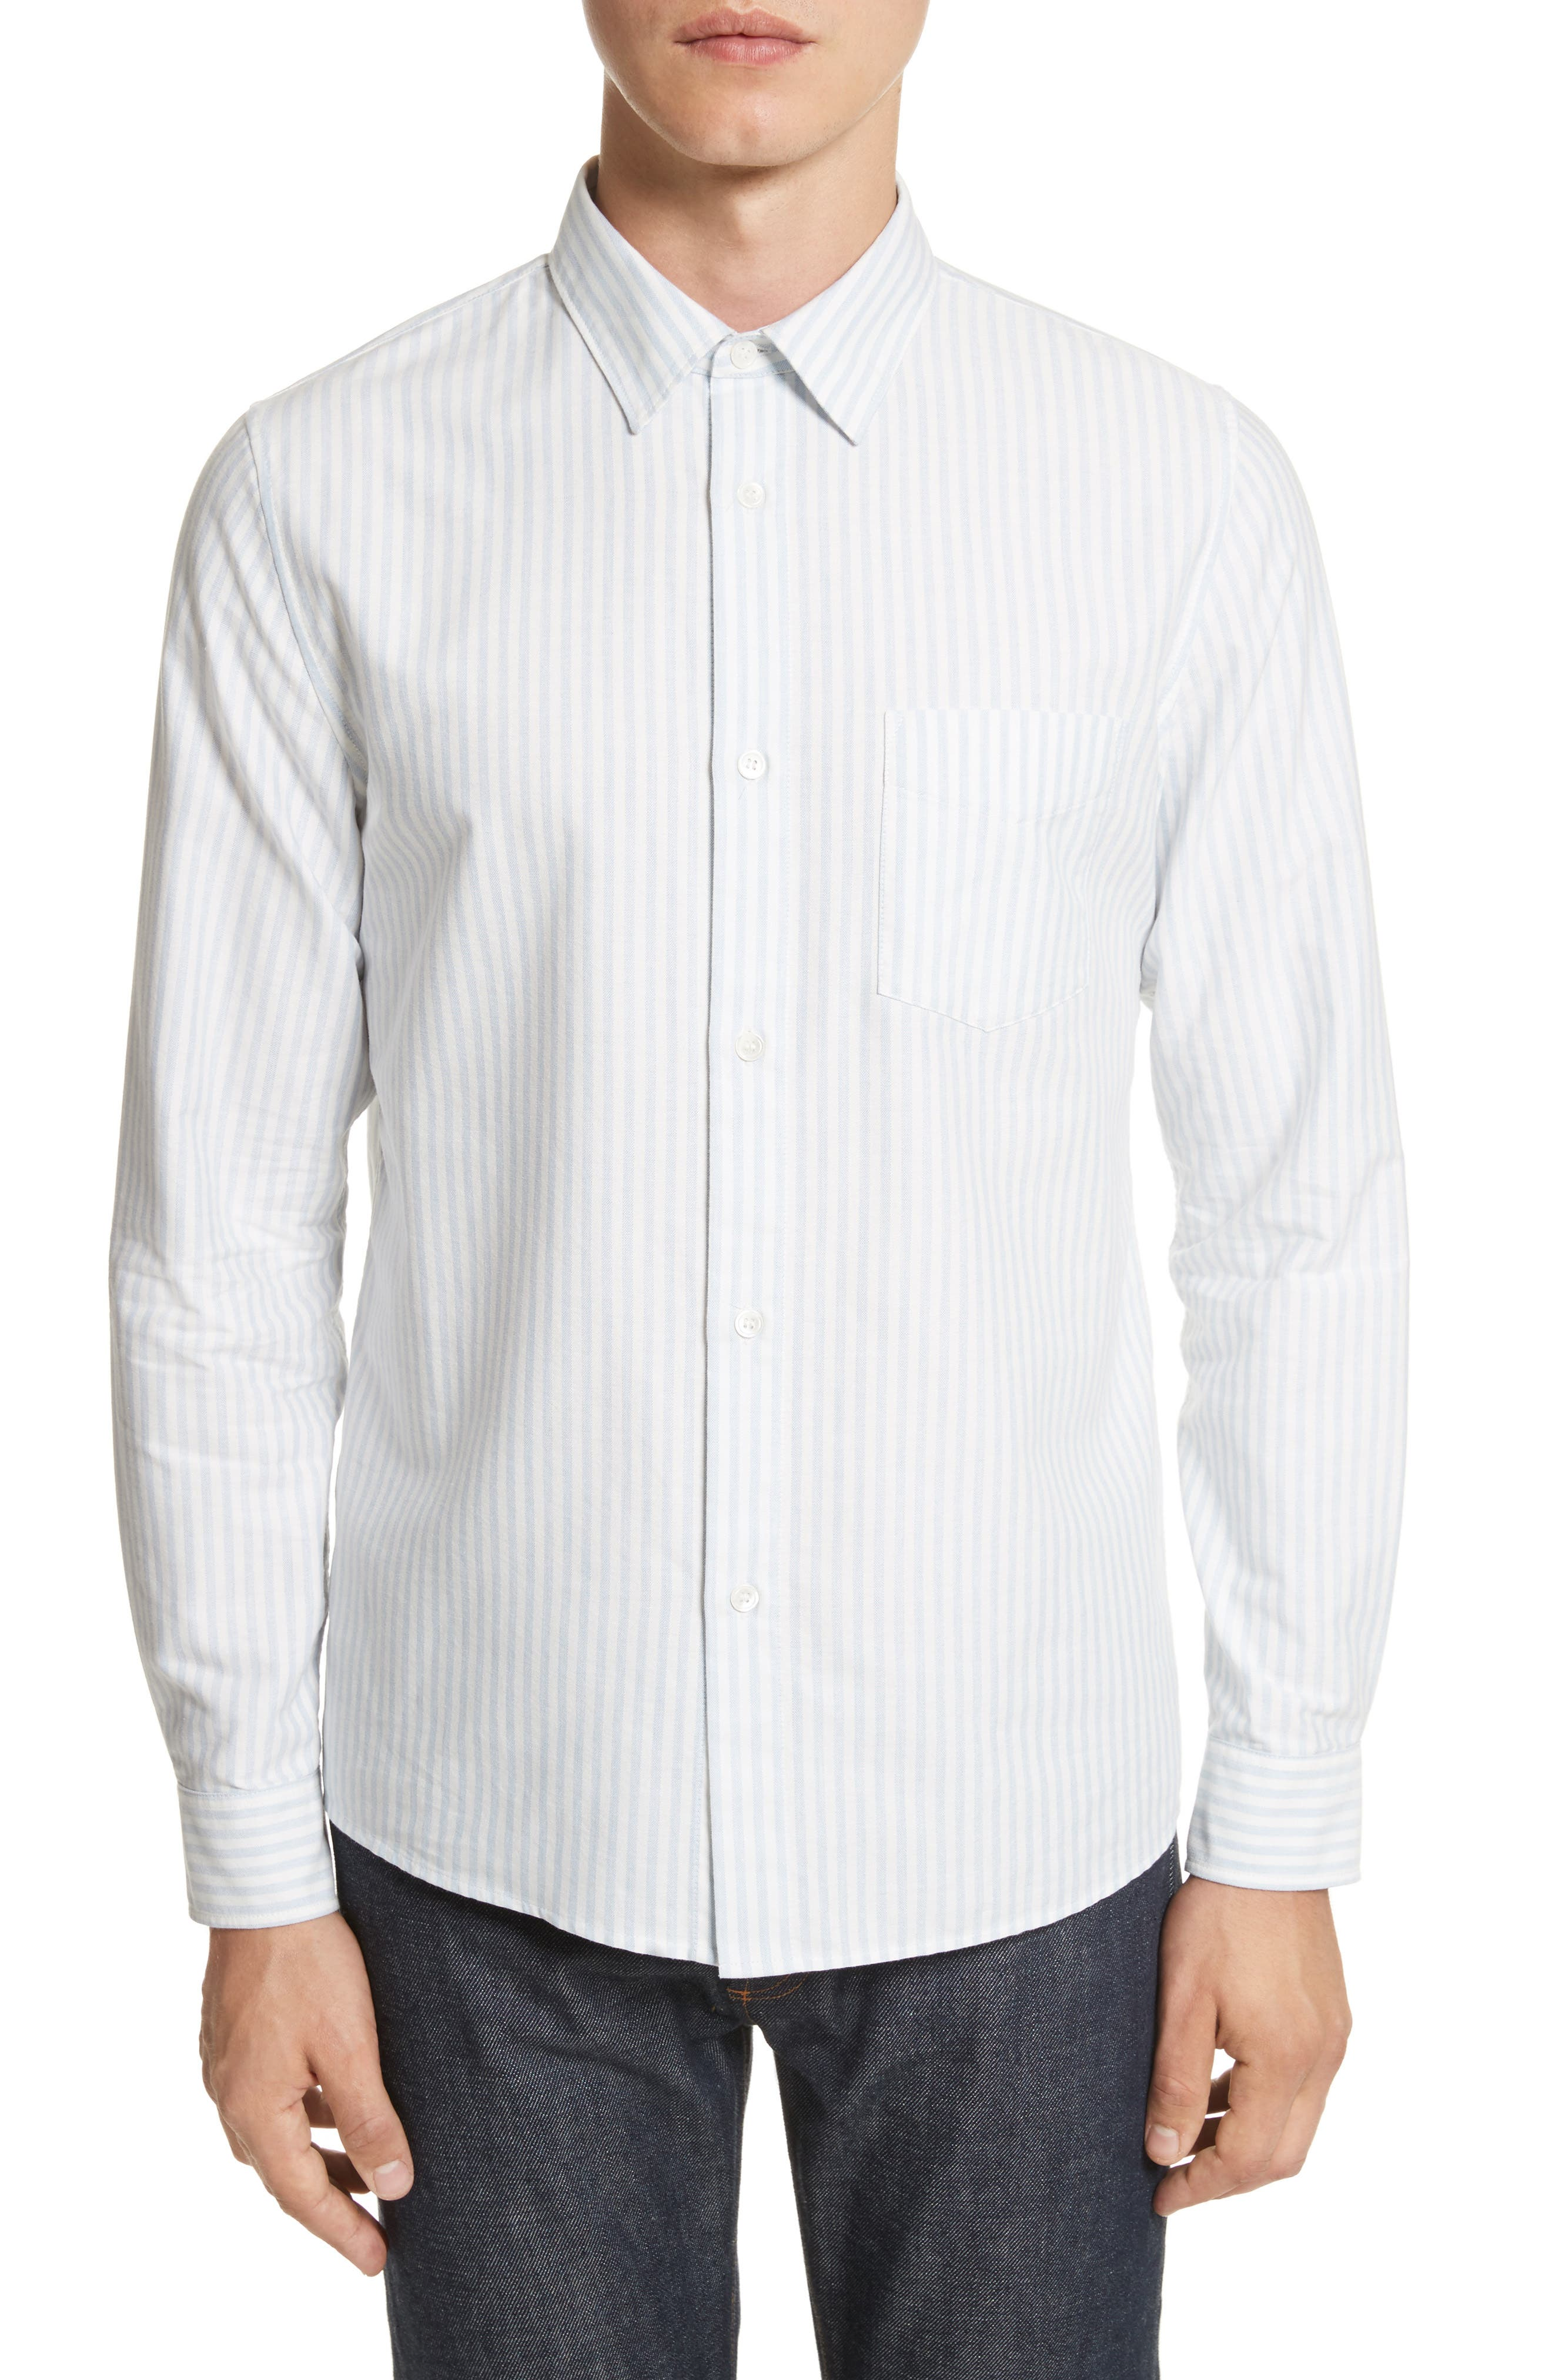 Oliver Stripe Oxford Shirt,                             Main thumbnail 1, color,                             Blue